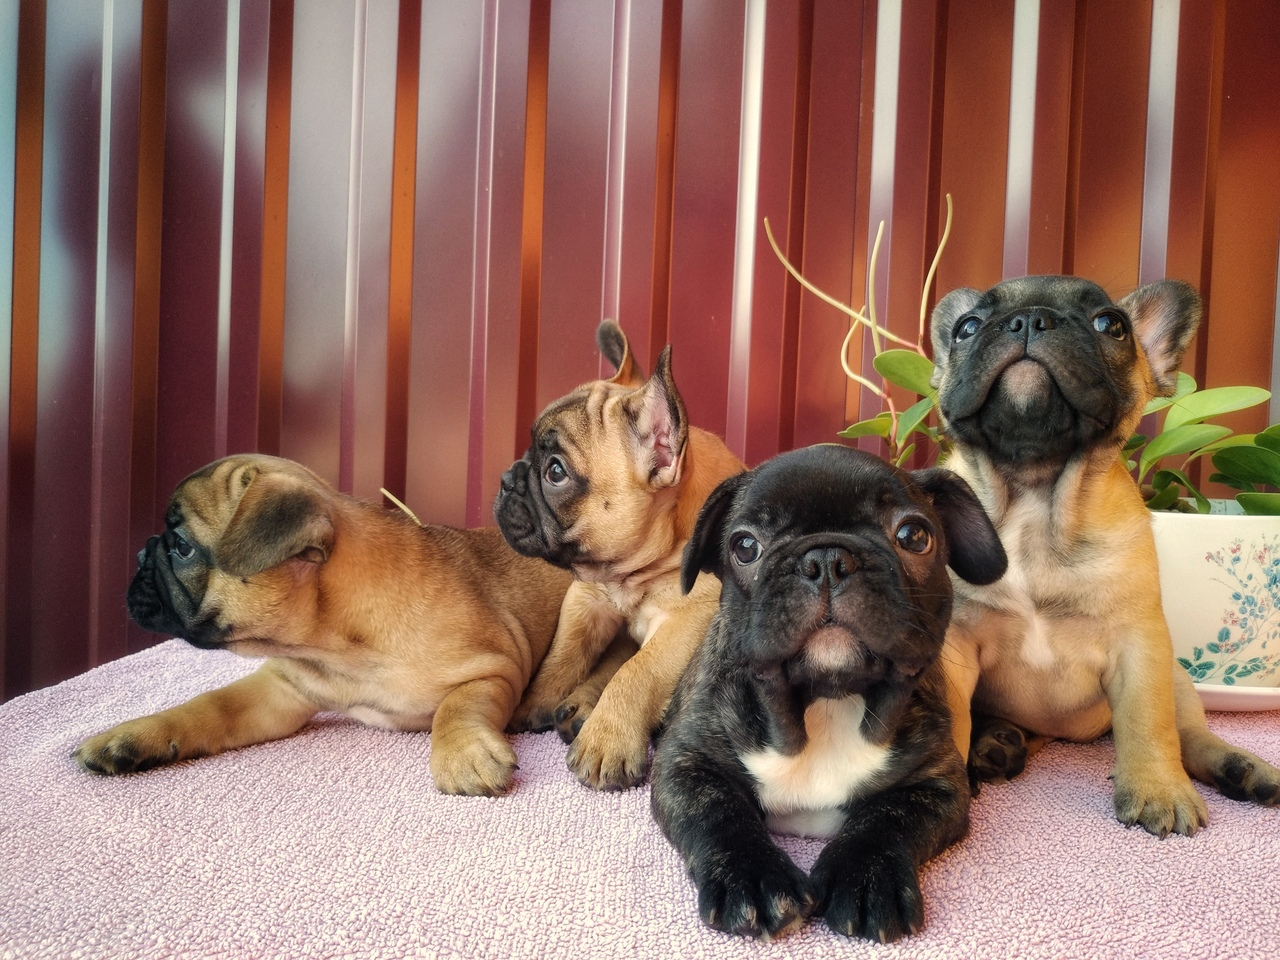 The French bulldog puppies